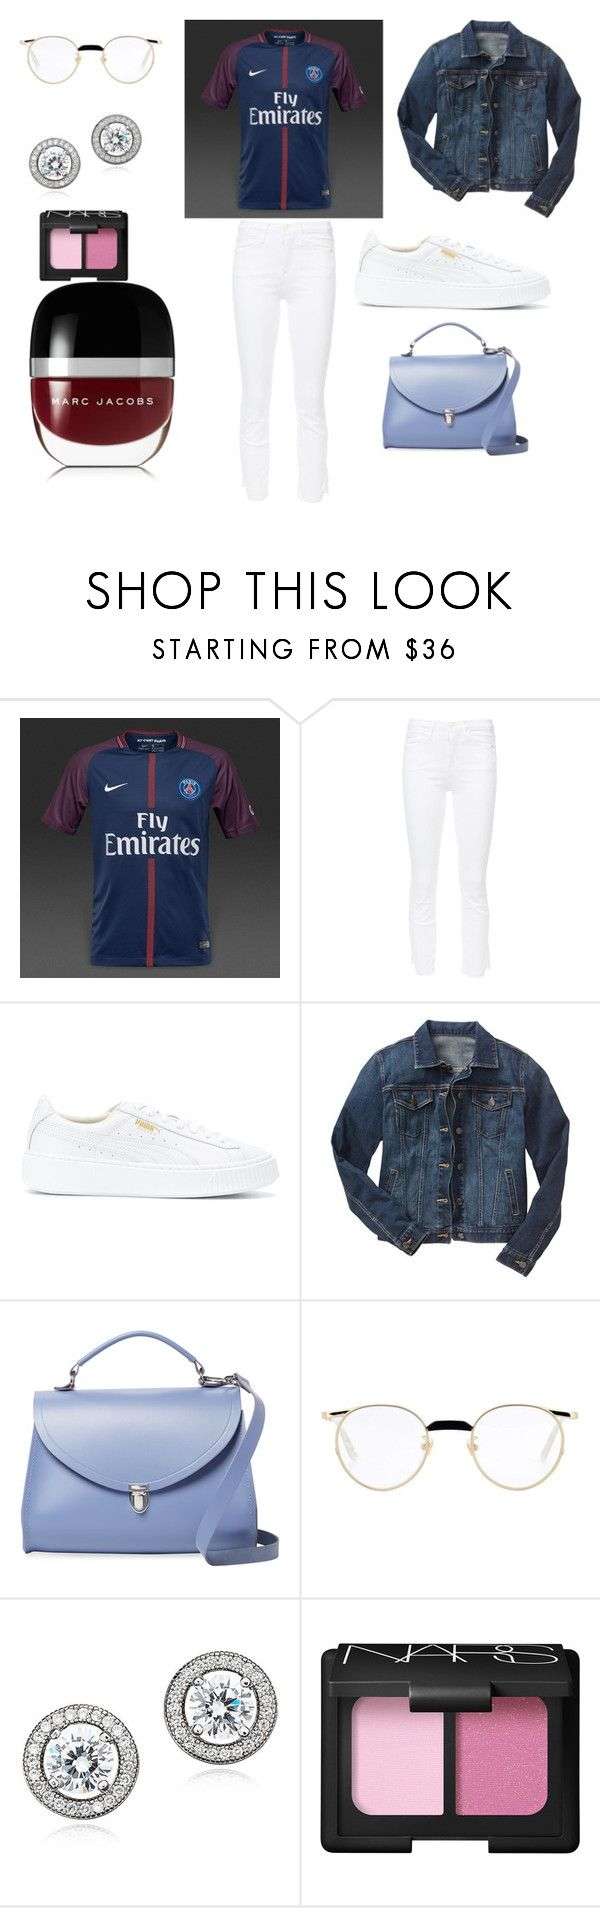 """Sans titre #9741"" by merveille67120 ❤ liked on Polyvore featuring NIKE, Frame, Puma, Gap, The Cambridge Satchel Company, Gucci, Crislu, NARS Cosmetics and Marc Jacobs"